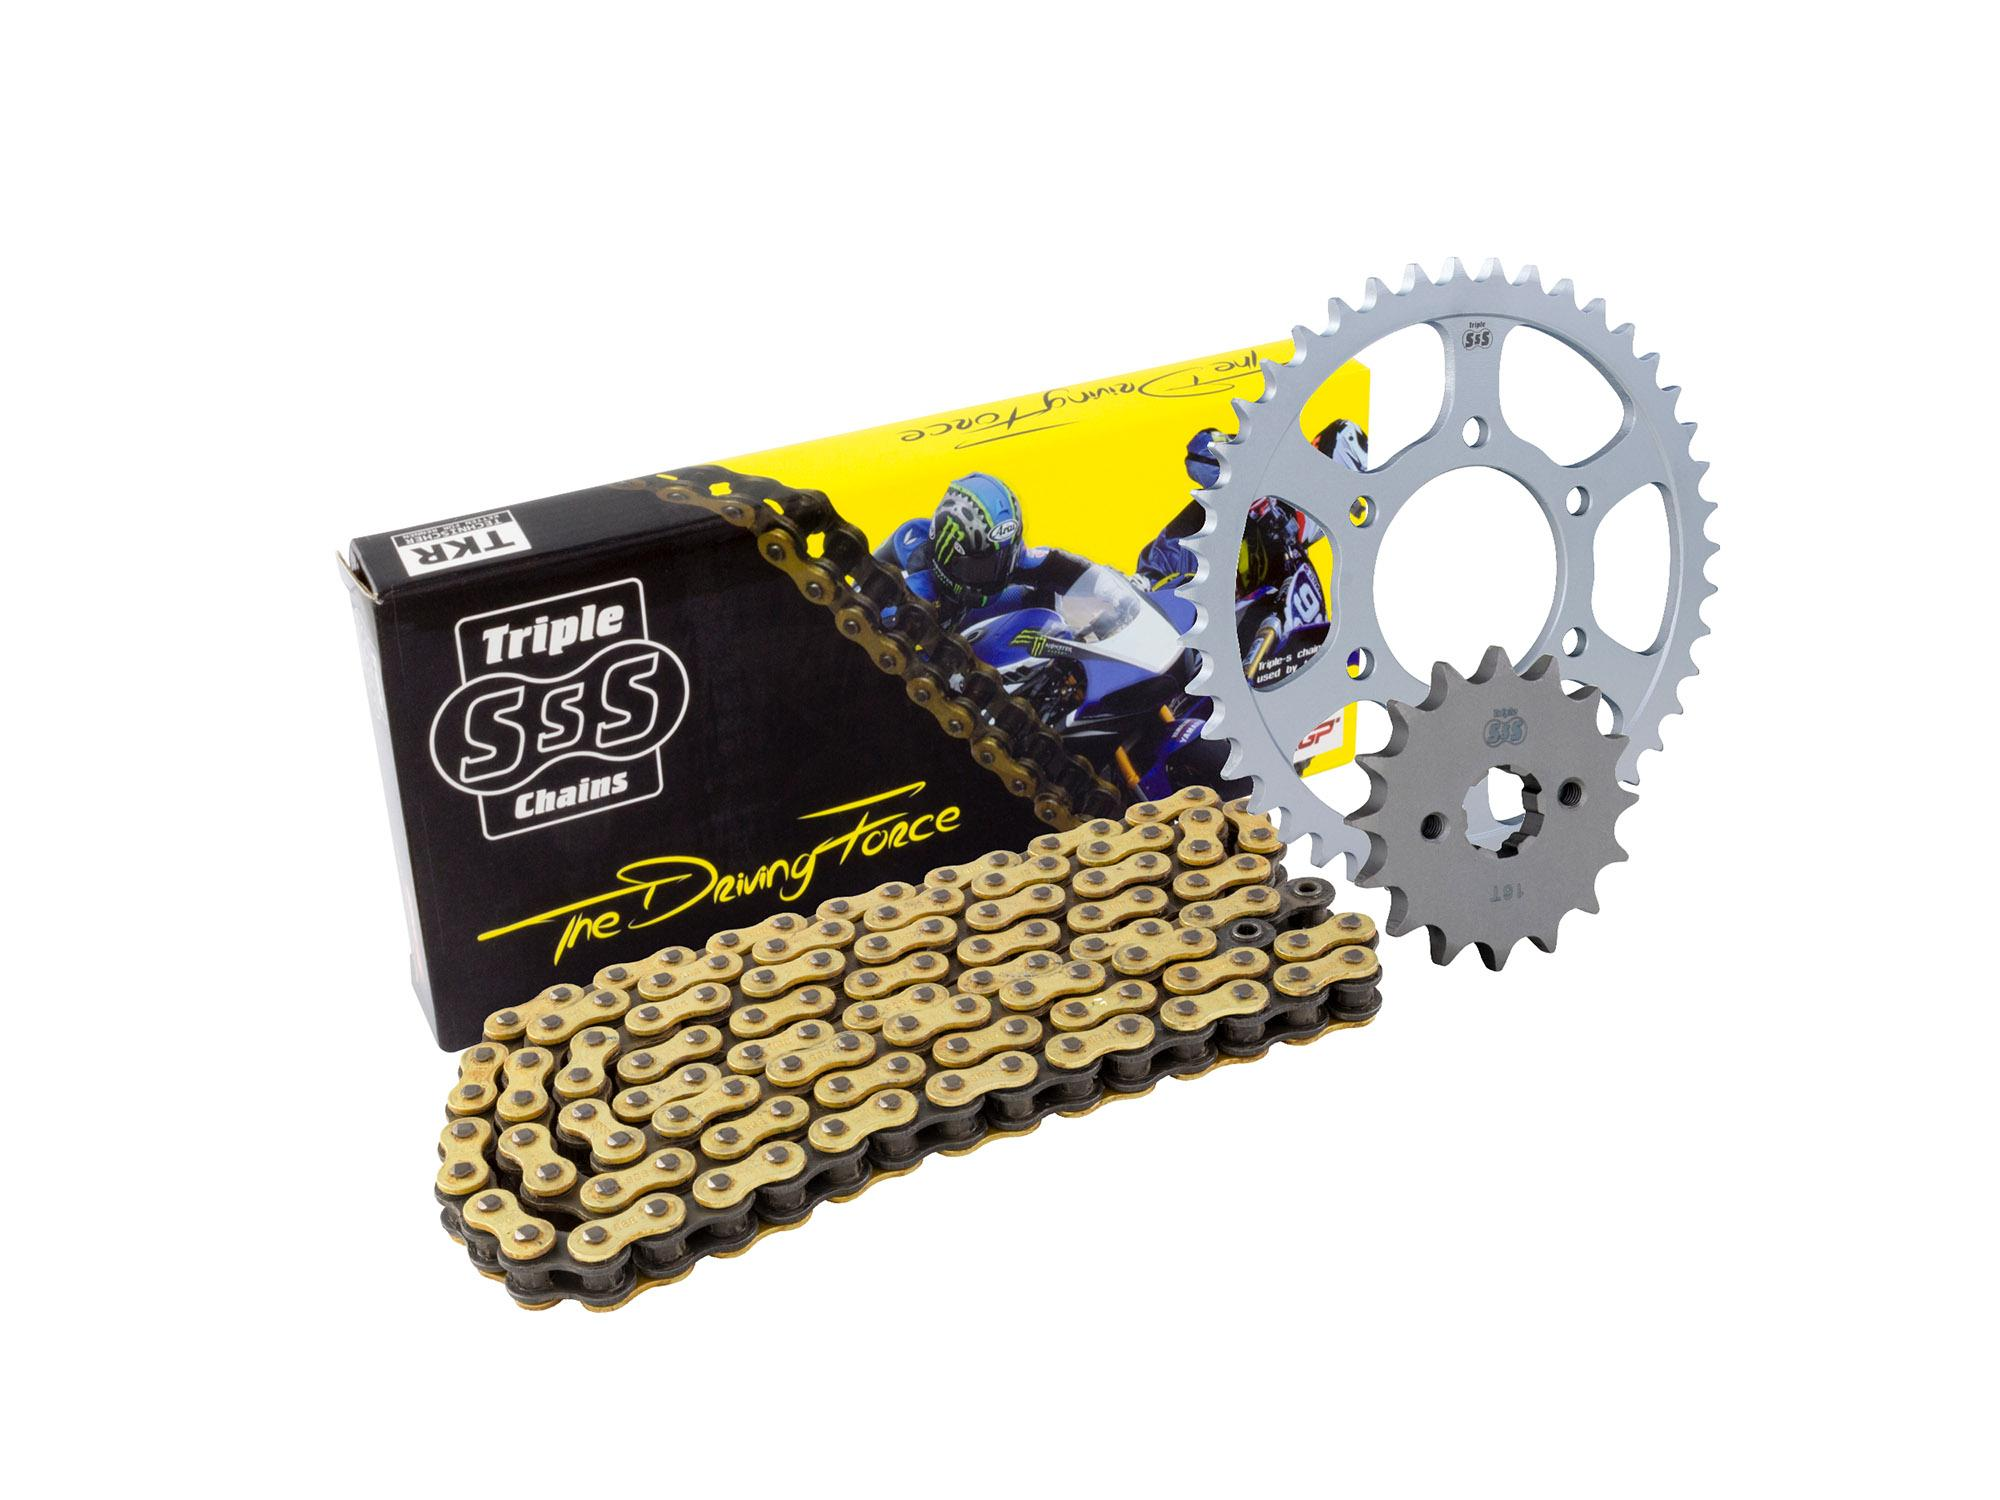 BMW F650 GS 08 Chain & Sprocket Kit: 17T Front, 41T Rear, HD O-Ring Gold Chain 525H 116Link